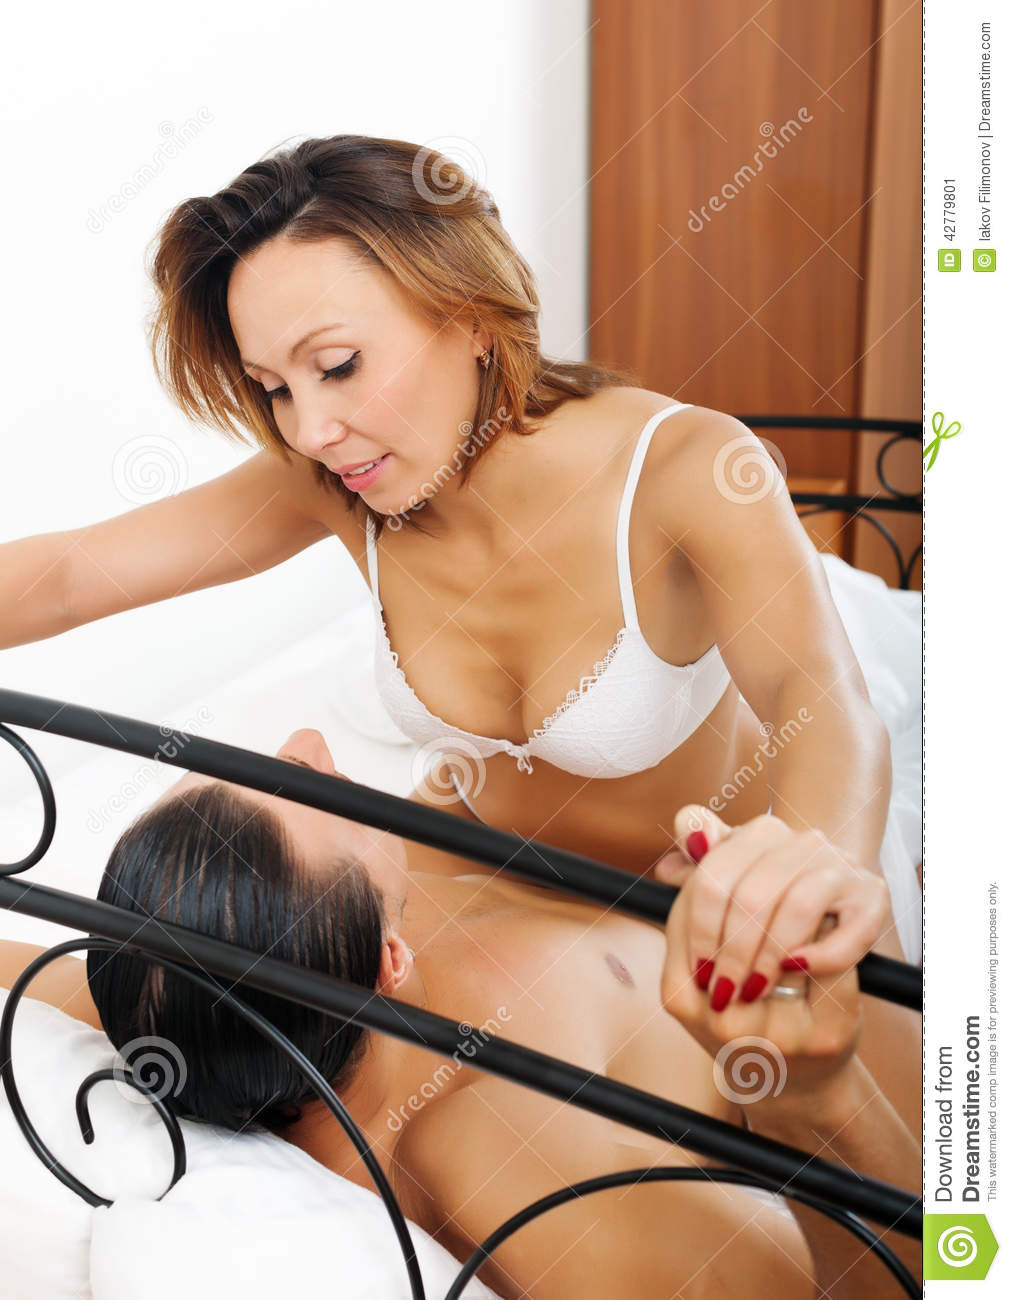 women head shaving during sex